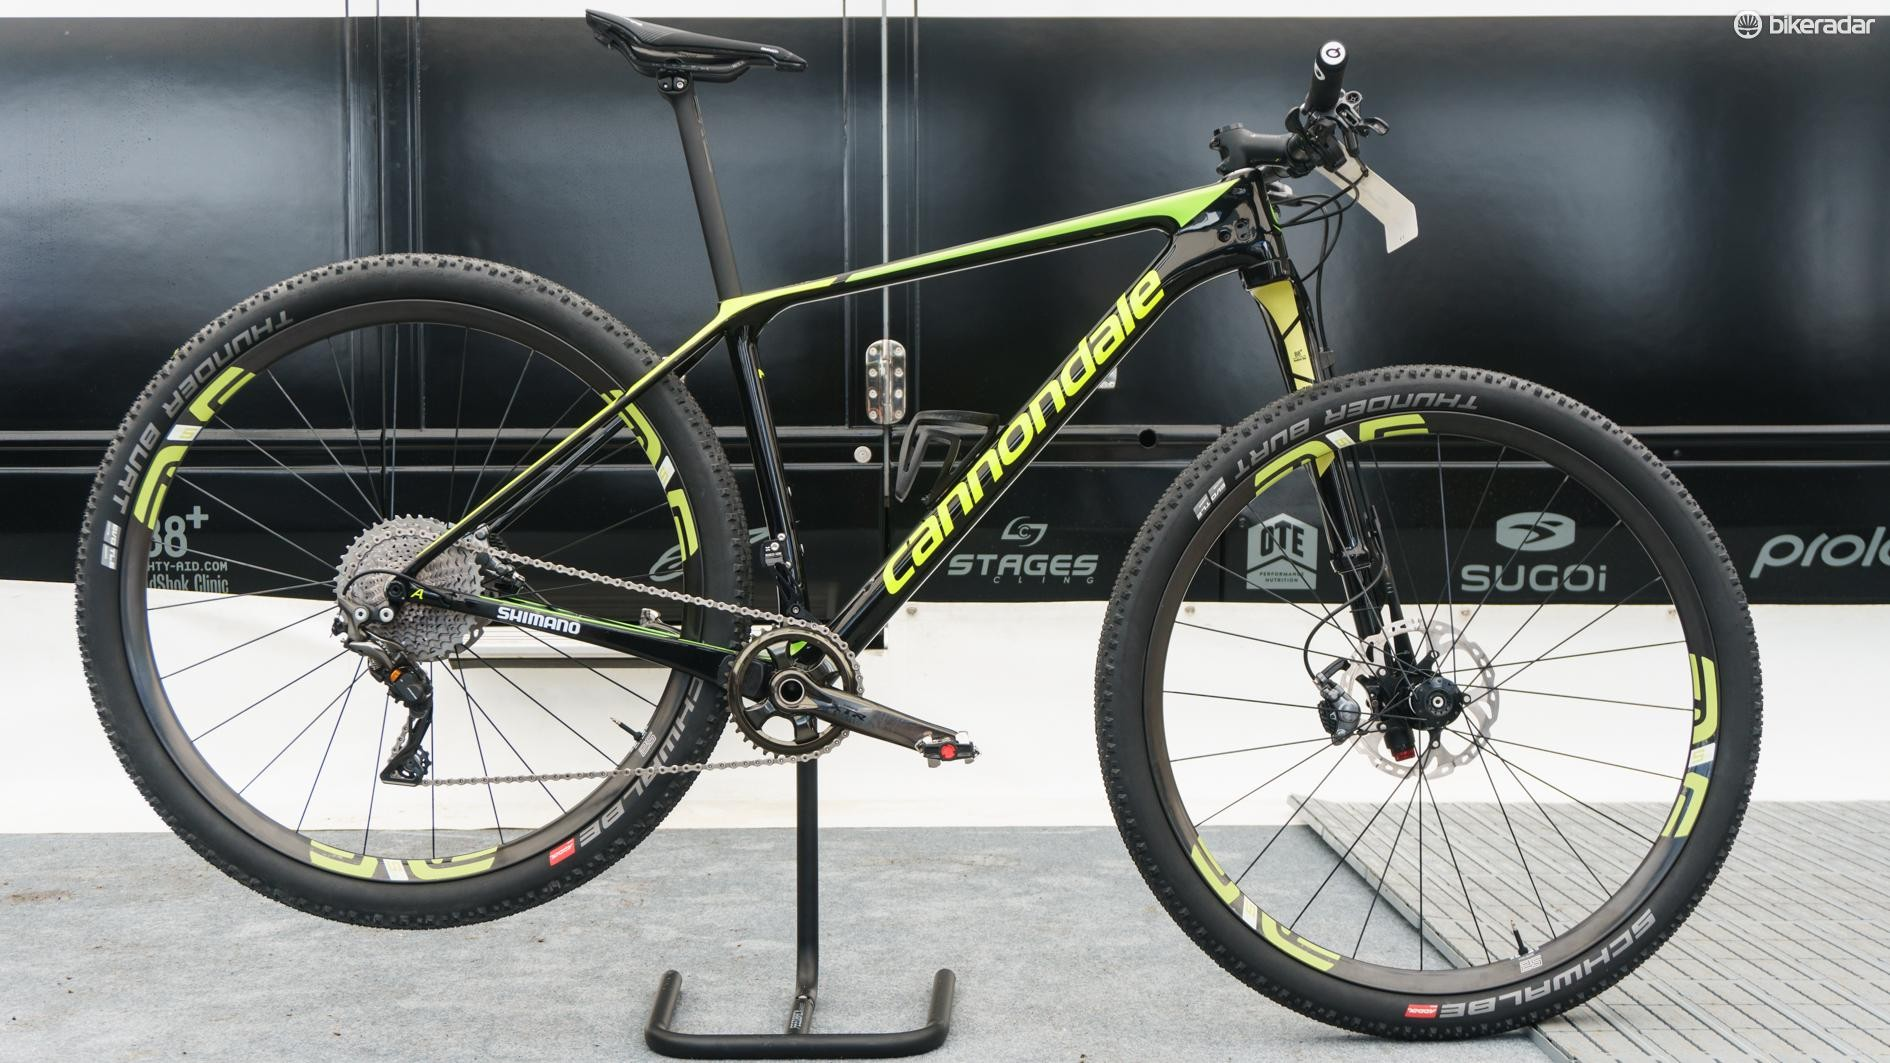 Maxime Marotte raced a new Cannondale F-Si to fourth place this weekend